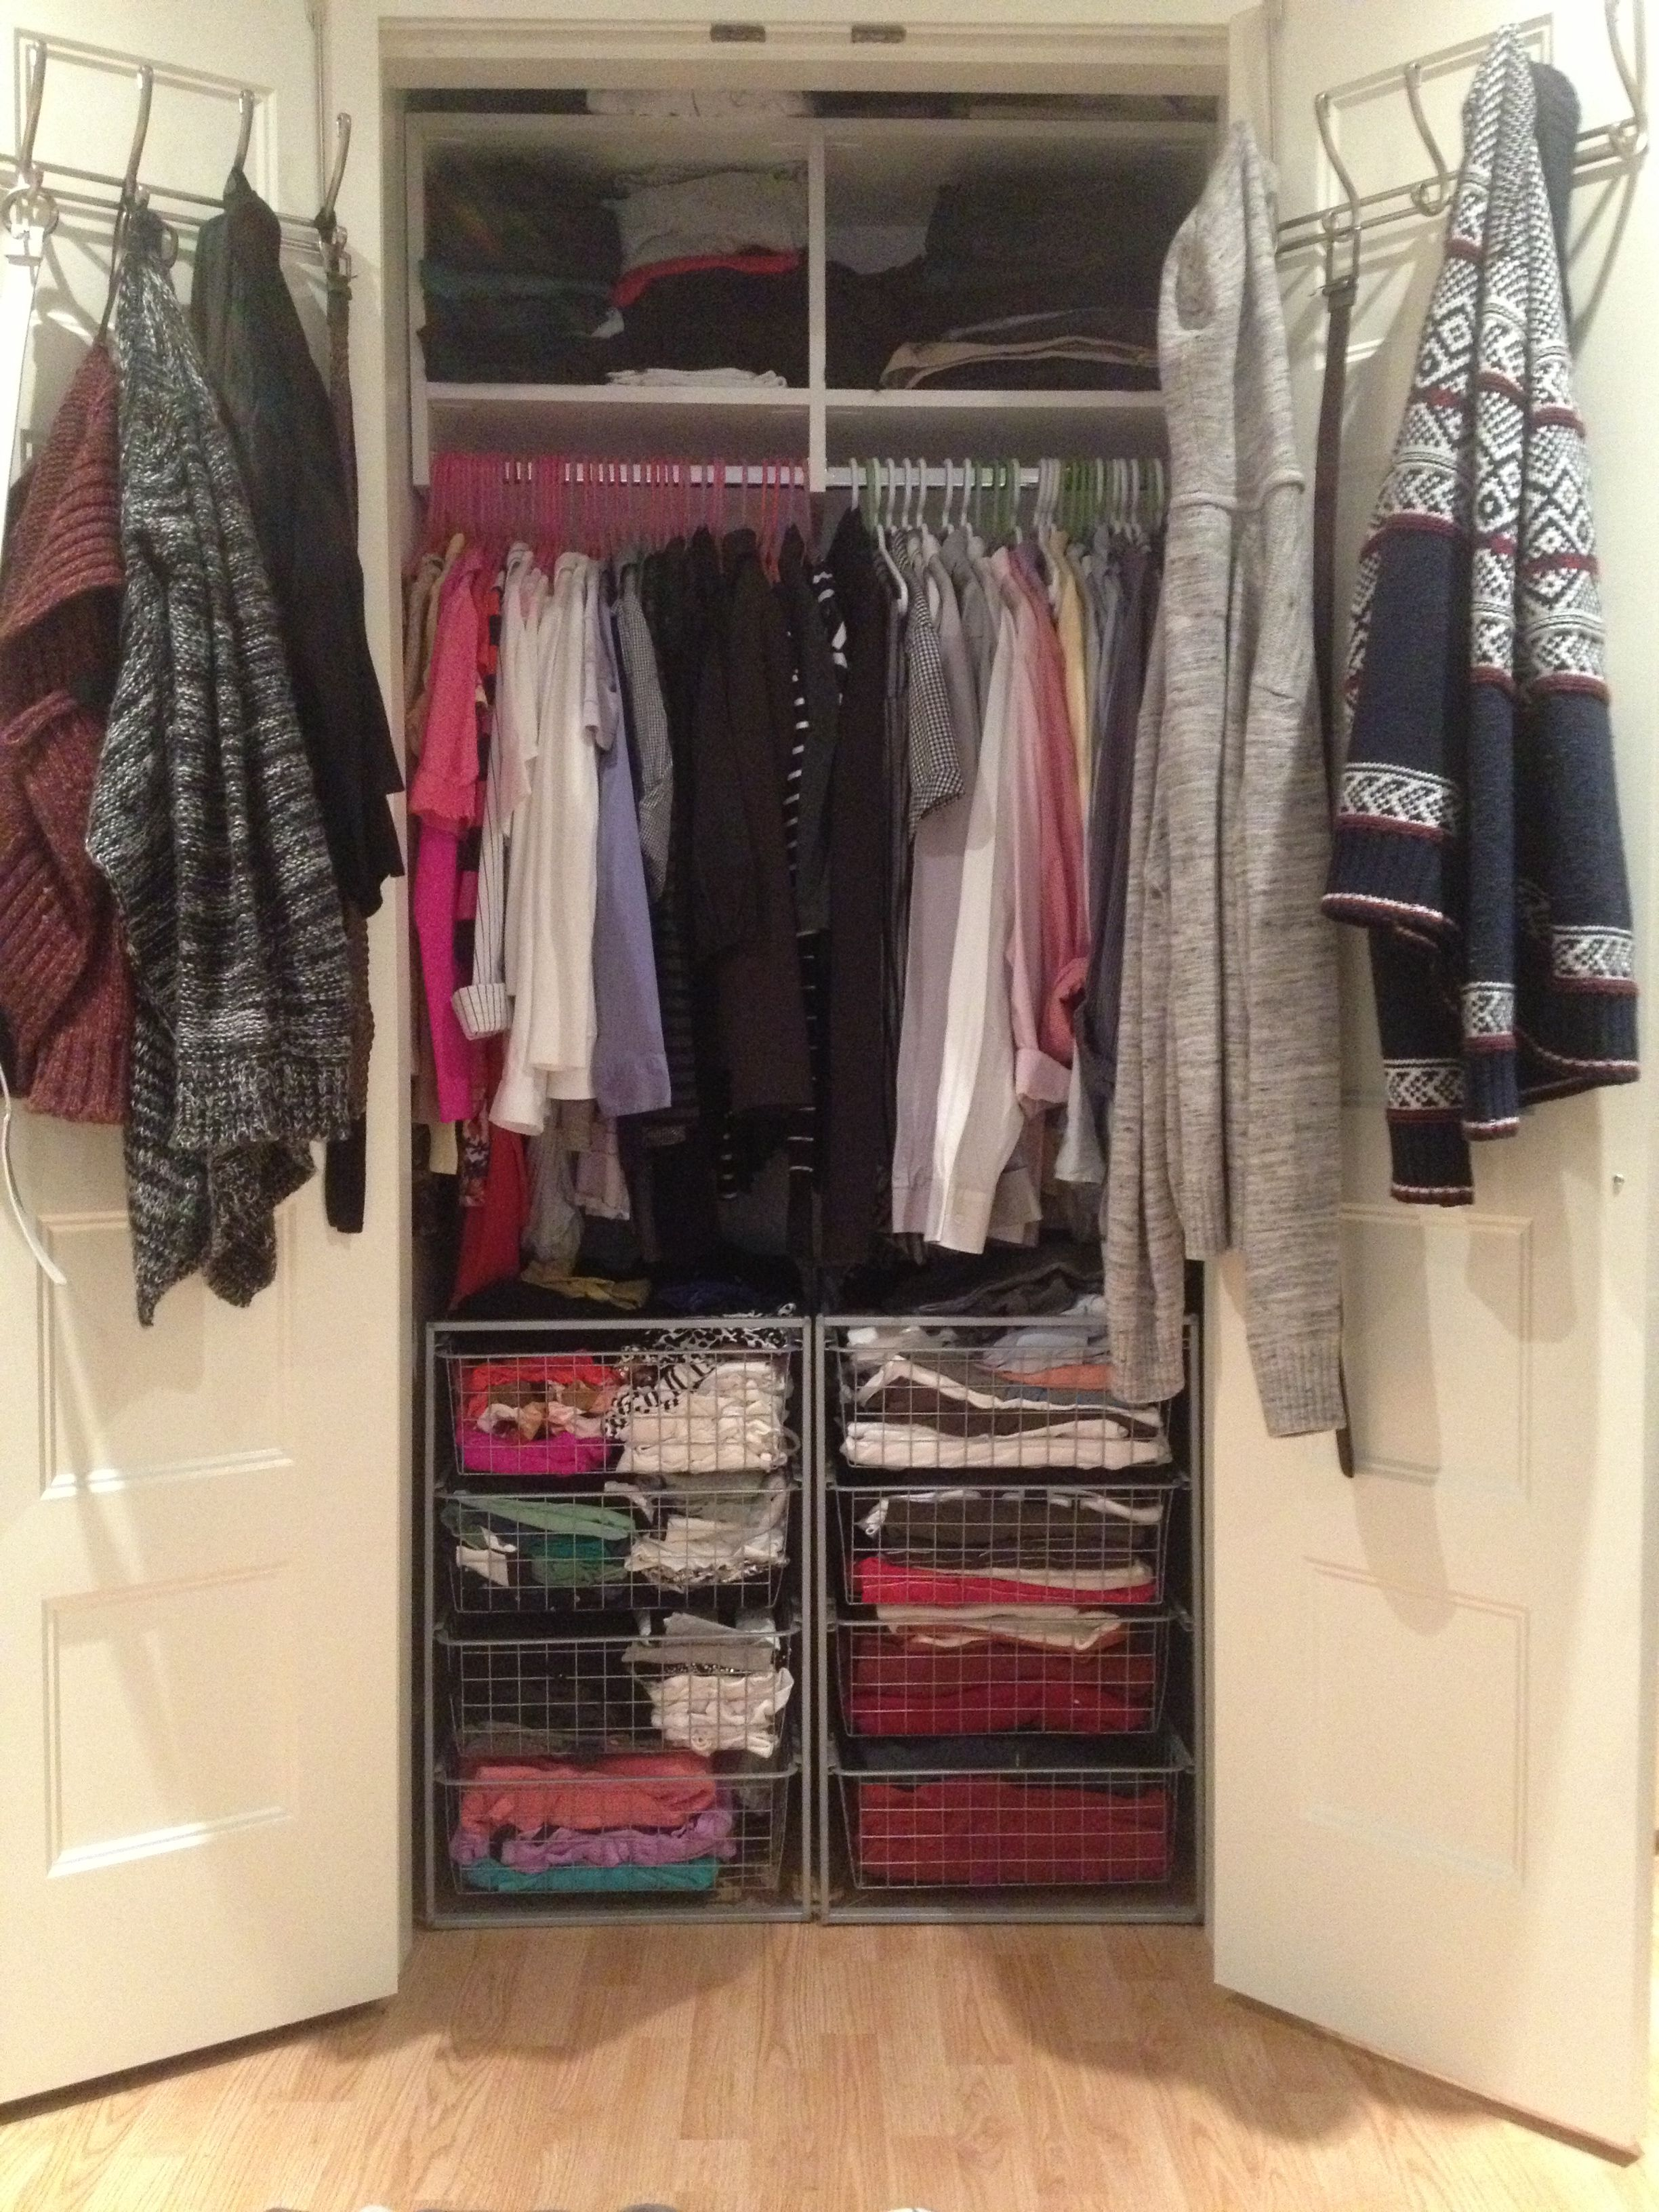 How To Make A Small Closet In A Big City Work For Two Without Breaking The